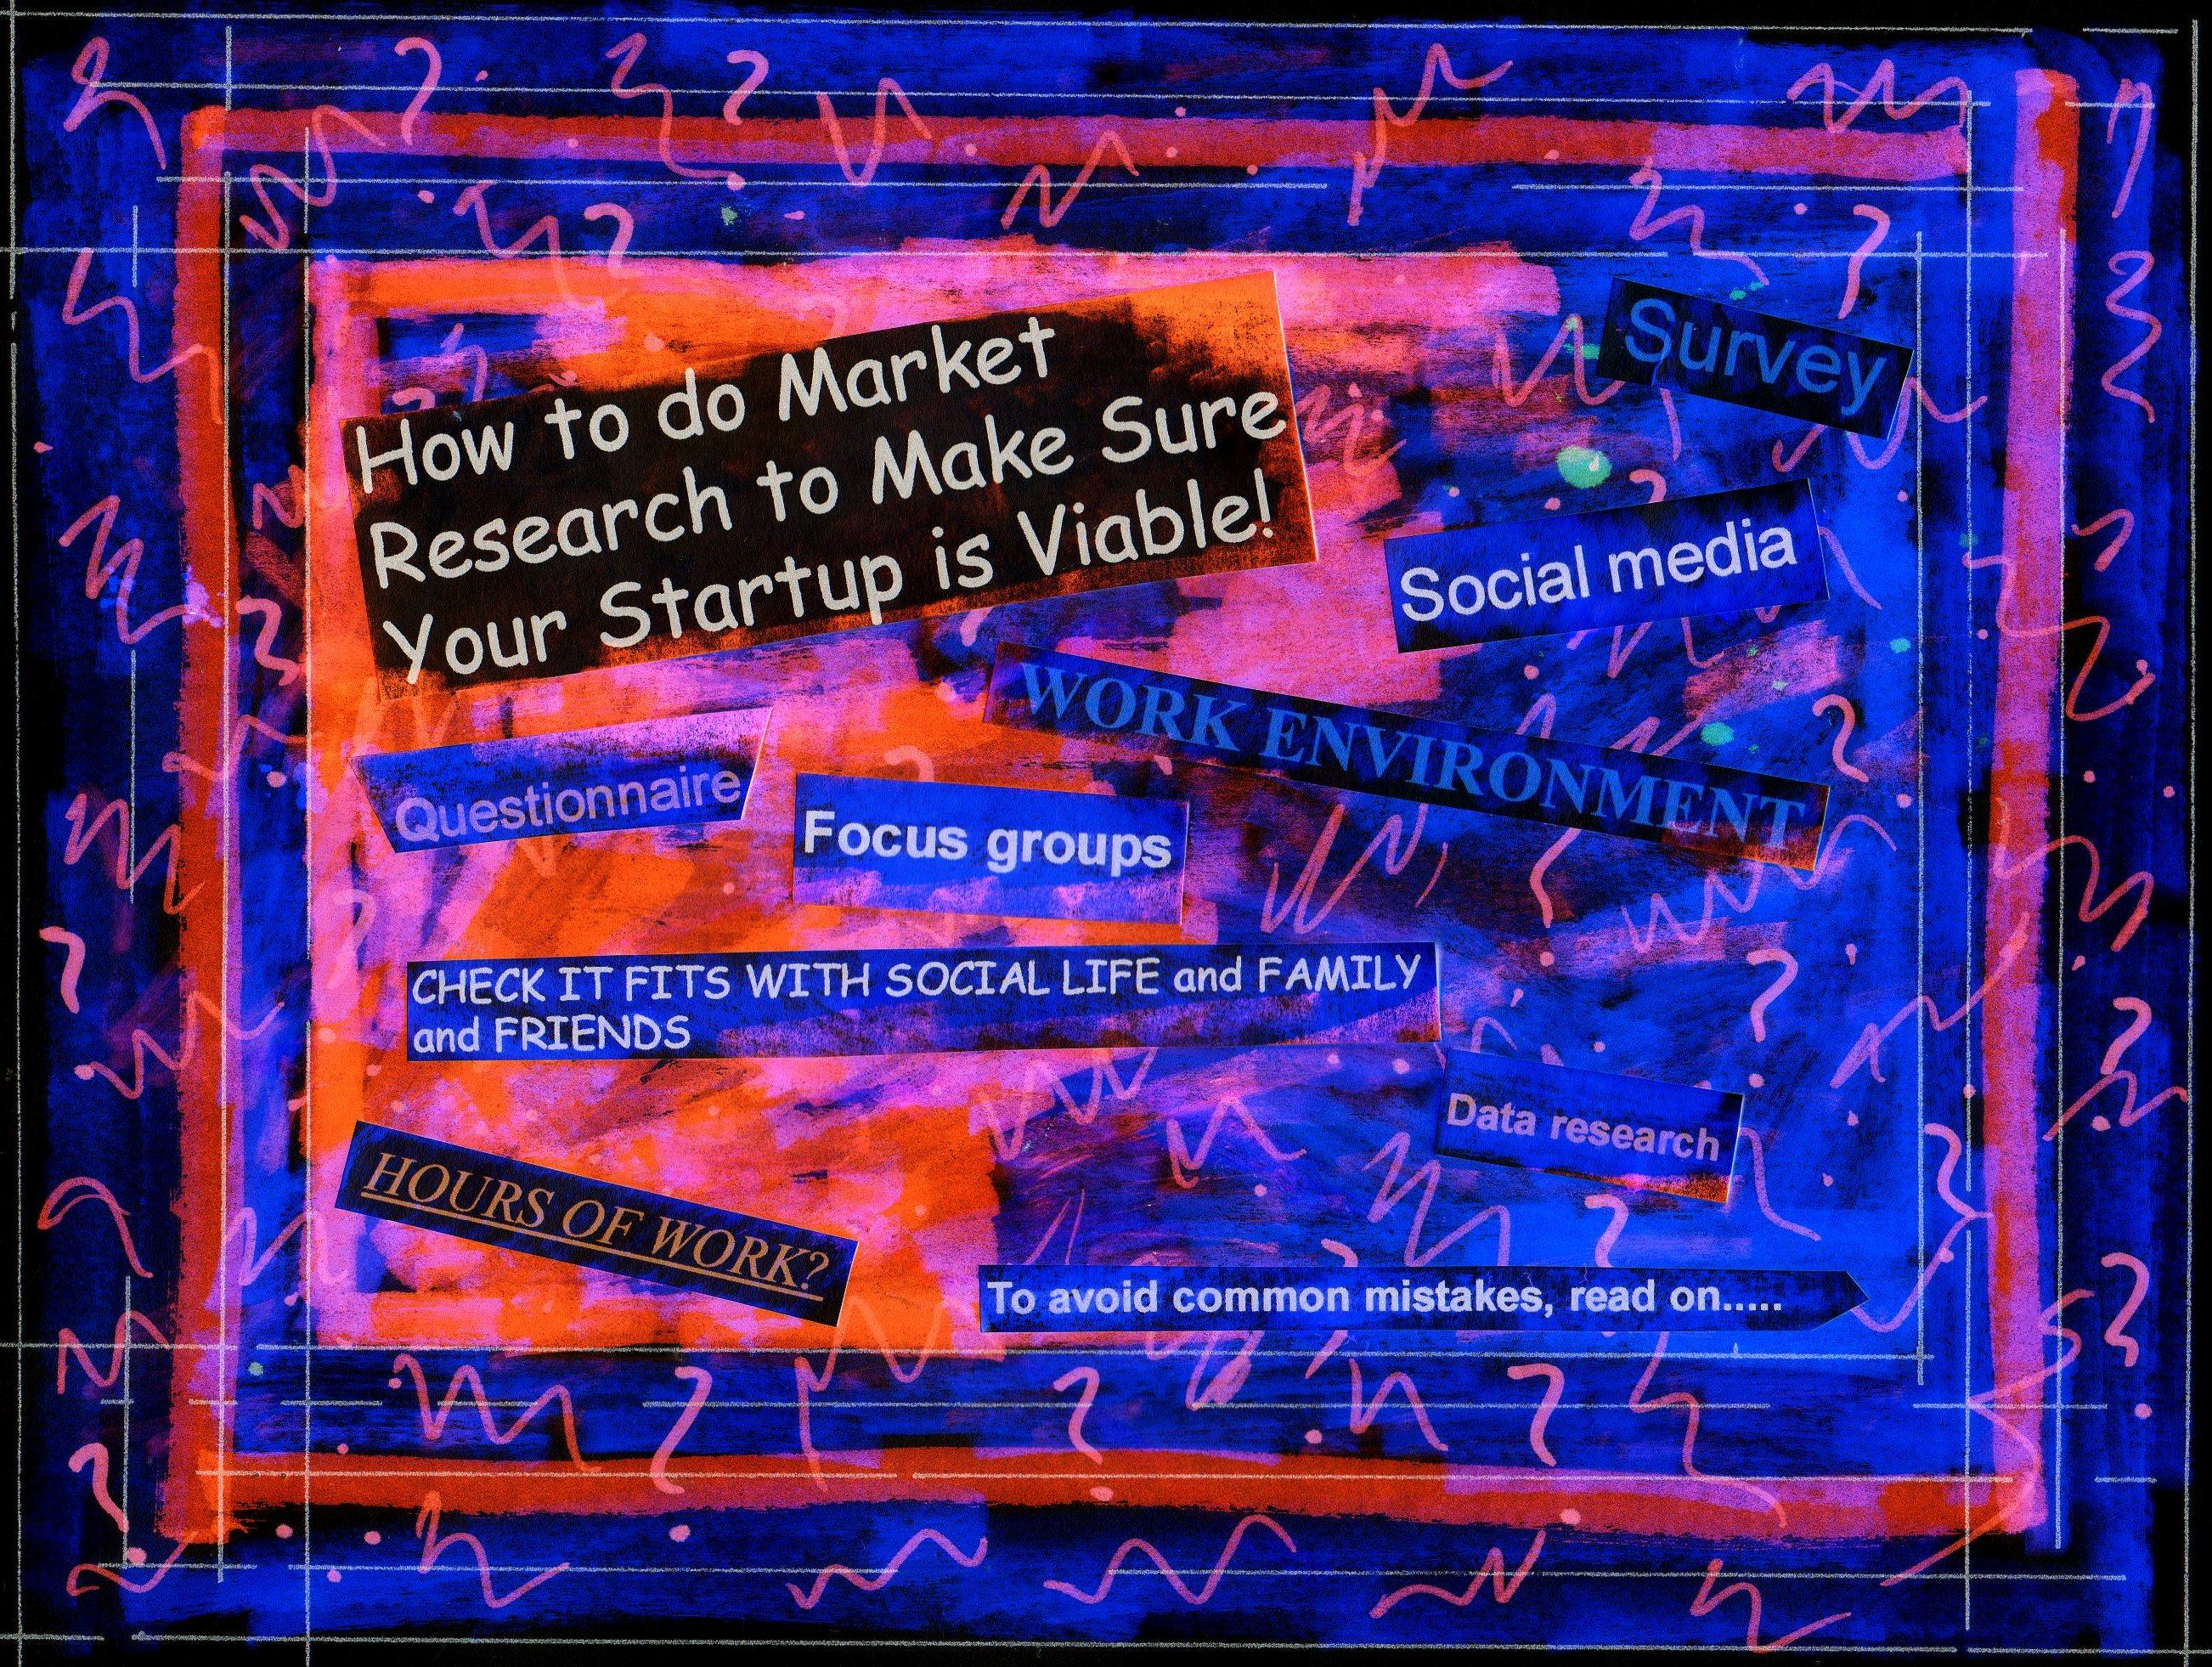 How to do Market Research to Make Sure Your Startup is Viable